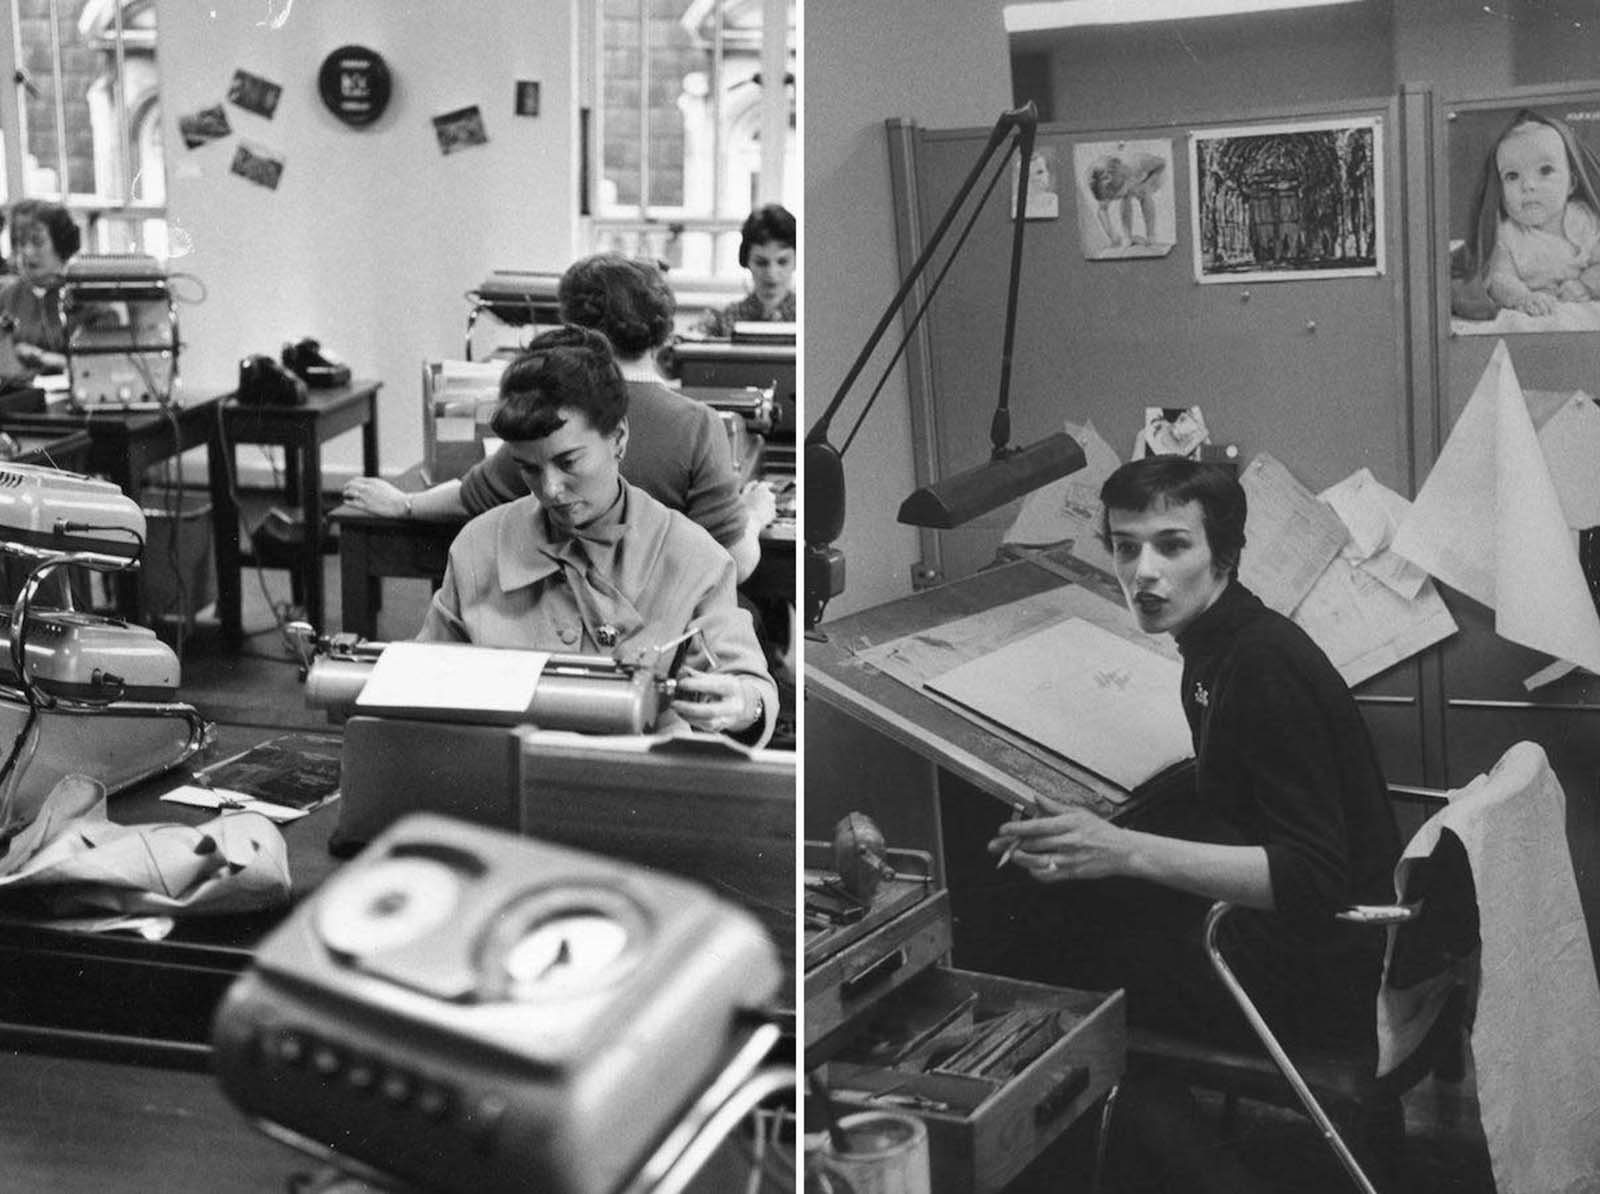 (Left) Women at work in a typing pool at Shell Mex House in London. The woman at the front wears a jacket and scarf with a brooch and earrings. Her hair is cut short on her forehead, and like the other women shown, is worn waved. 1955. (Right) This woman sits at an illustrator's desk. She is dressed in black and wears a turtleneck sweater. Her hair is cut very short. 1957.